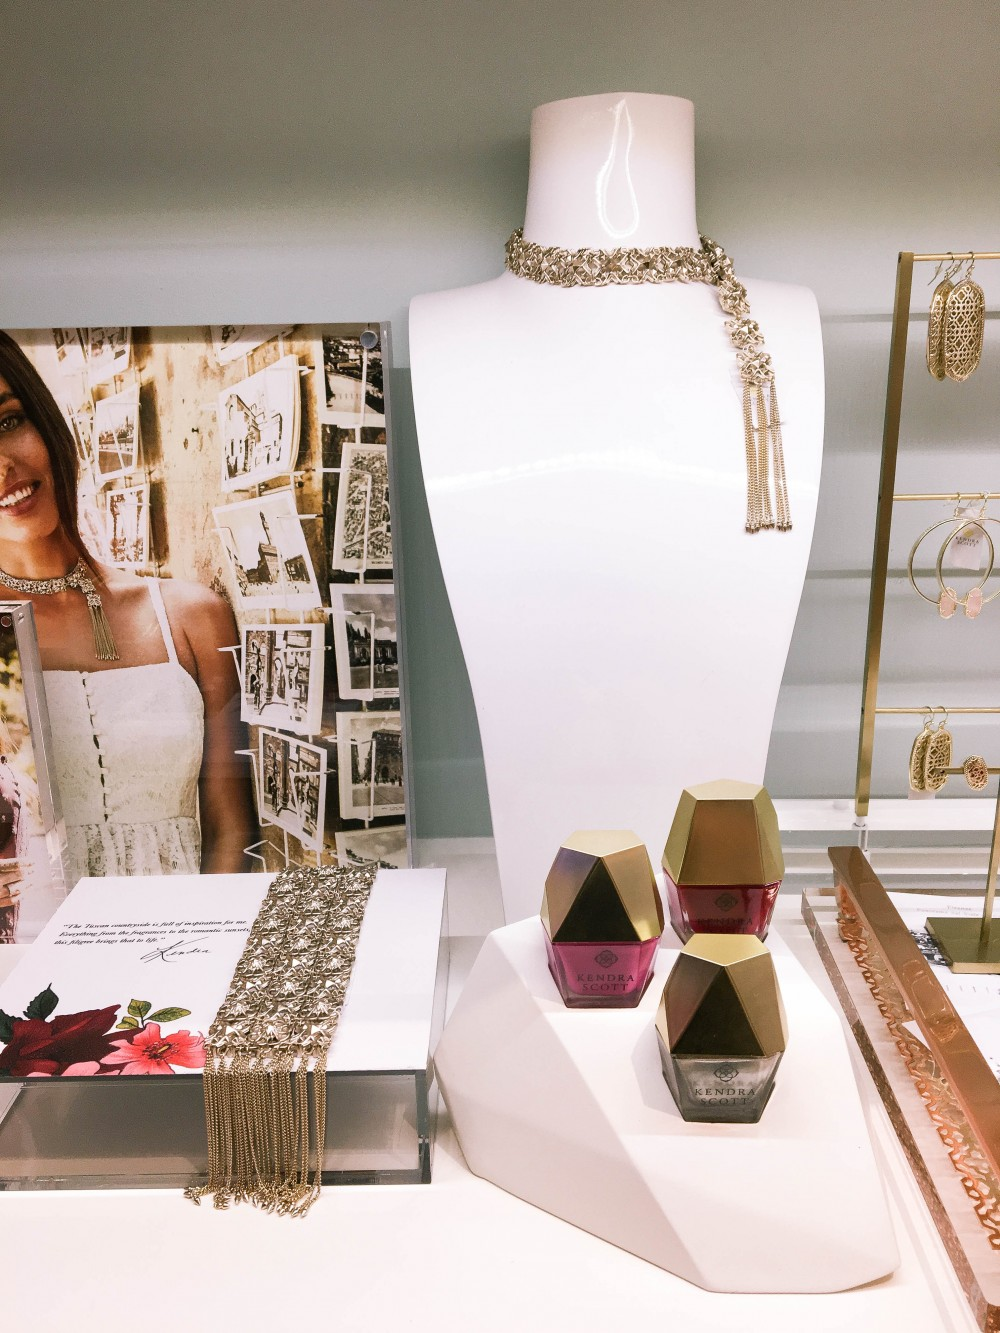 Kendra Scott Fall 2017 Launch Party-Kendra Scott Fall 2017 Collection-Whisk Away to Florence-Inspired by Italy-Bay Area Events-Santana Row-Have Need Want 5